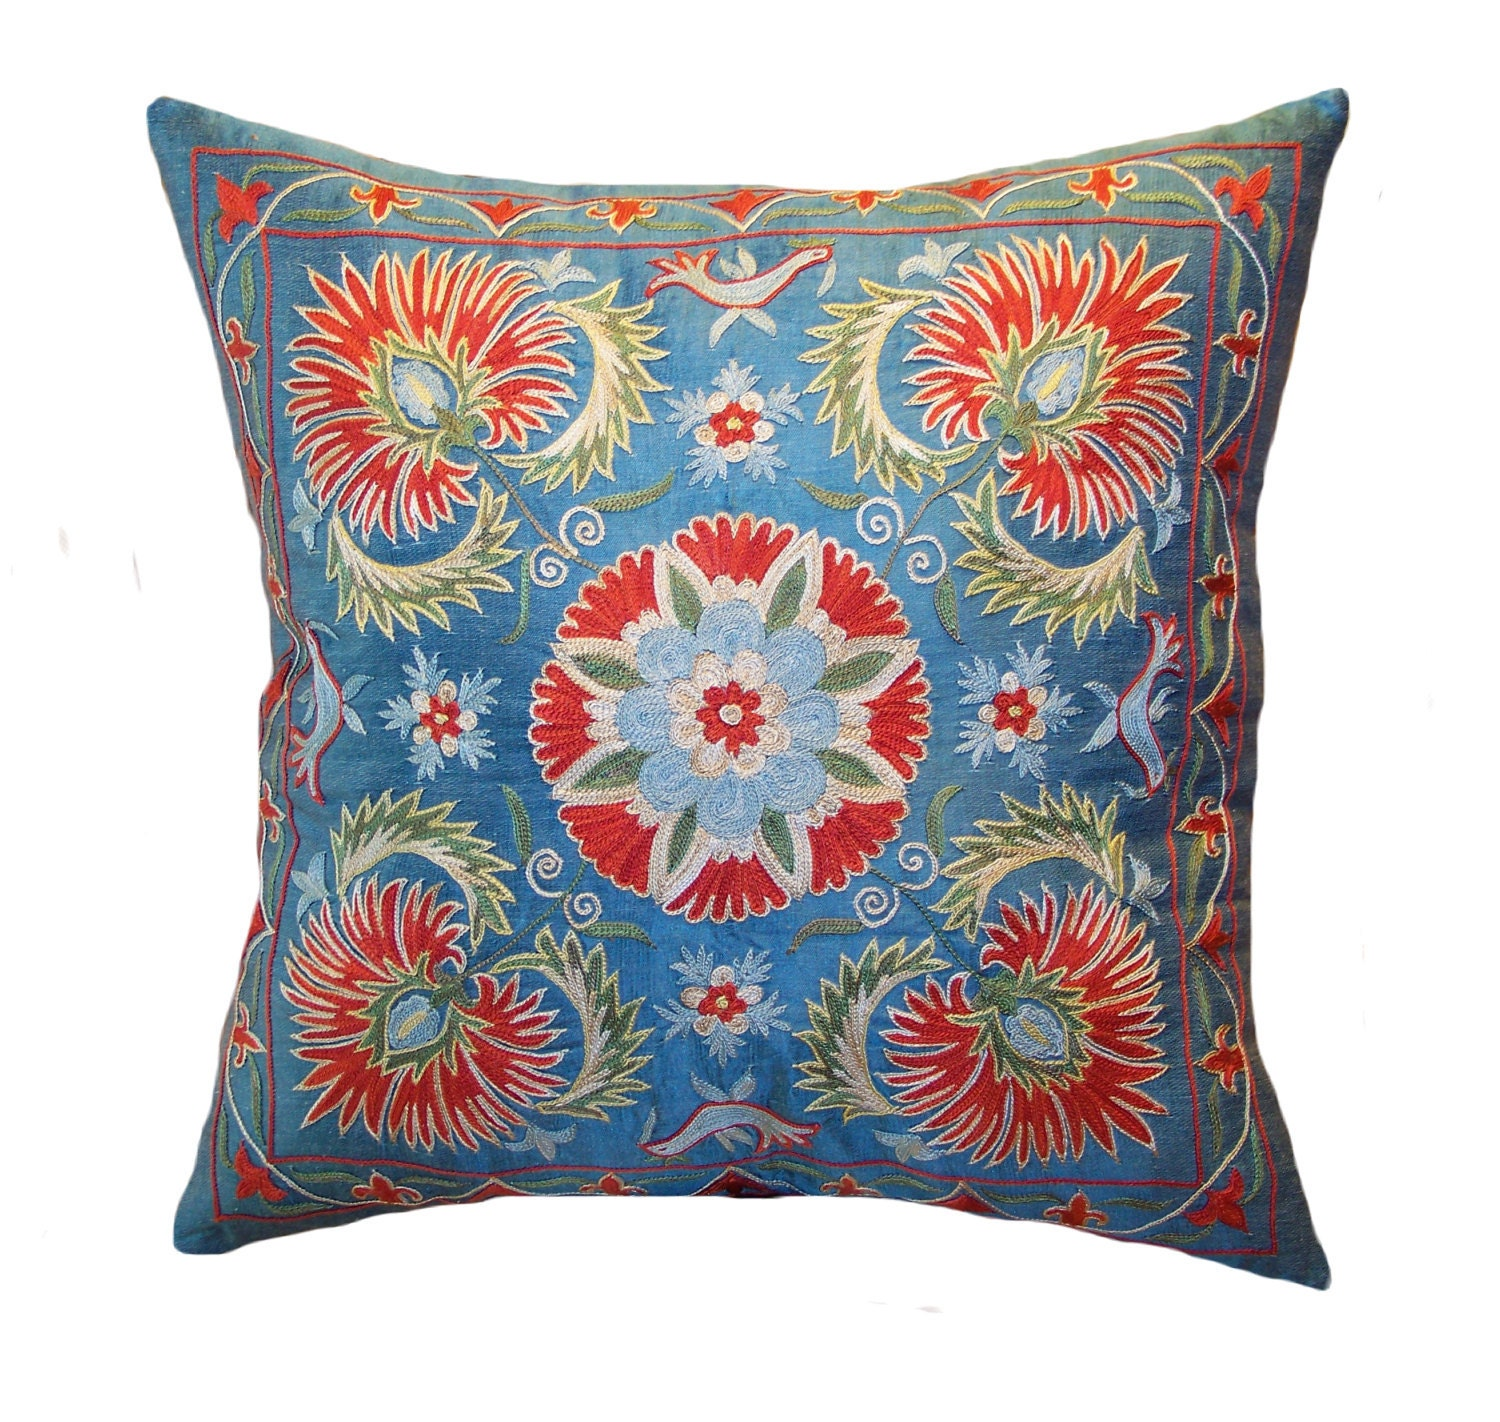 Throw Pillow Synonym : Image Gallery suzani pillows